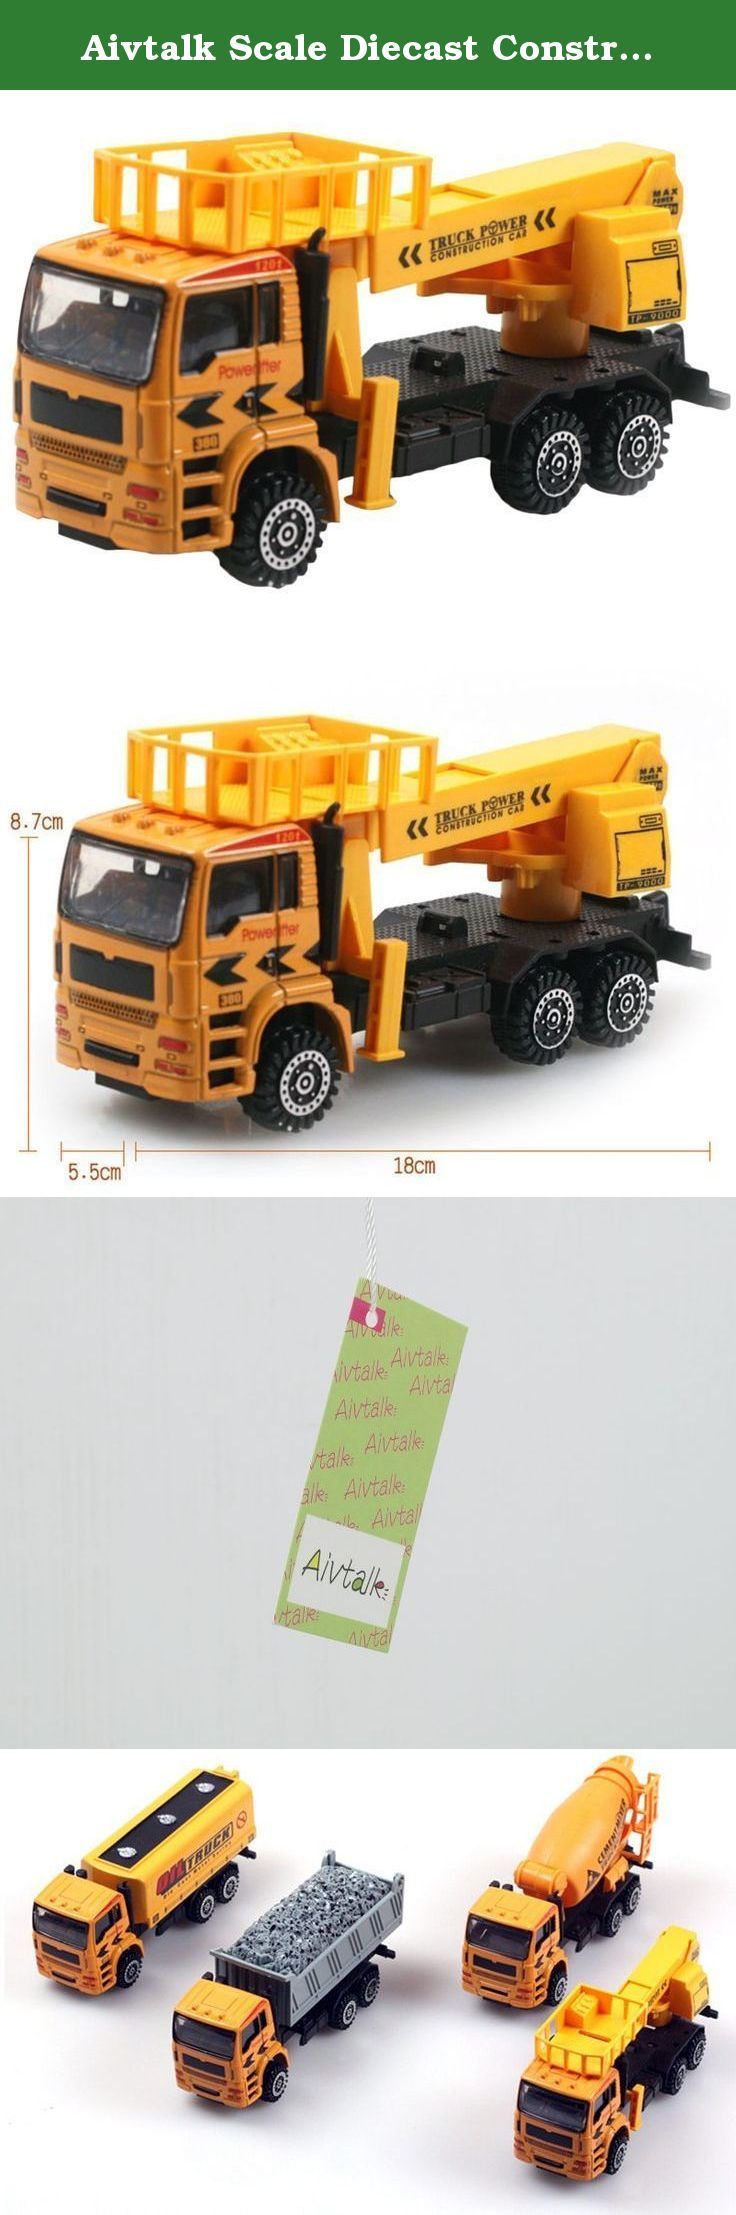 Aivtalk Scale Diecast Construction Vehicle Transport Car Carrier Truck Toy Model Cars for Boys. Features: Super cool gift for kids Completely non-toxic, safe for children Designed with realistic features in a smaller scale Specifications: Material: Metal & Plastic Scale:1:50 For Ages: 3 years and up Dimensions: approx. 18*8.7*5.5cm Color:As picture Package includes: 1 * Toy truck.